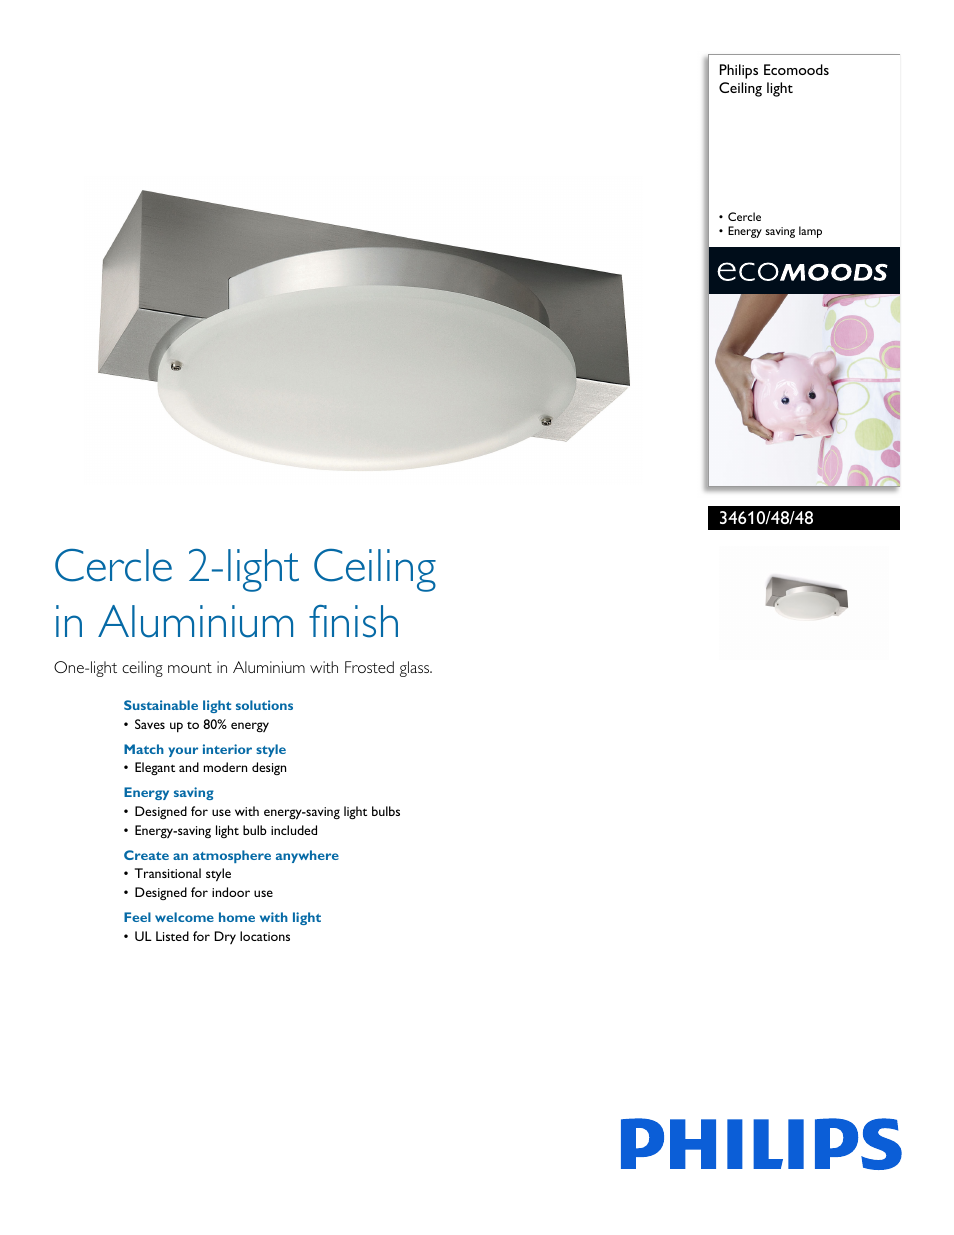 Philips forecast ecomoods ceiling light 34610 48 48 cercle energy philips forecast ecomoods ceiling light 34610 48 48 cercle energy saving lamp user manual 2 pages aloadofball